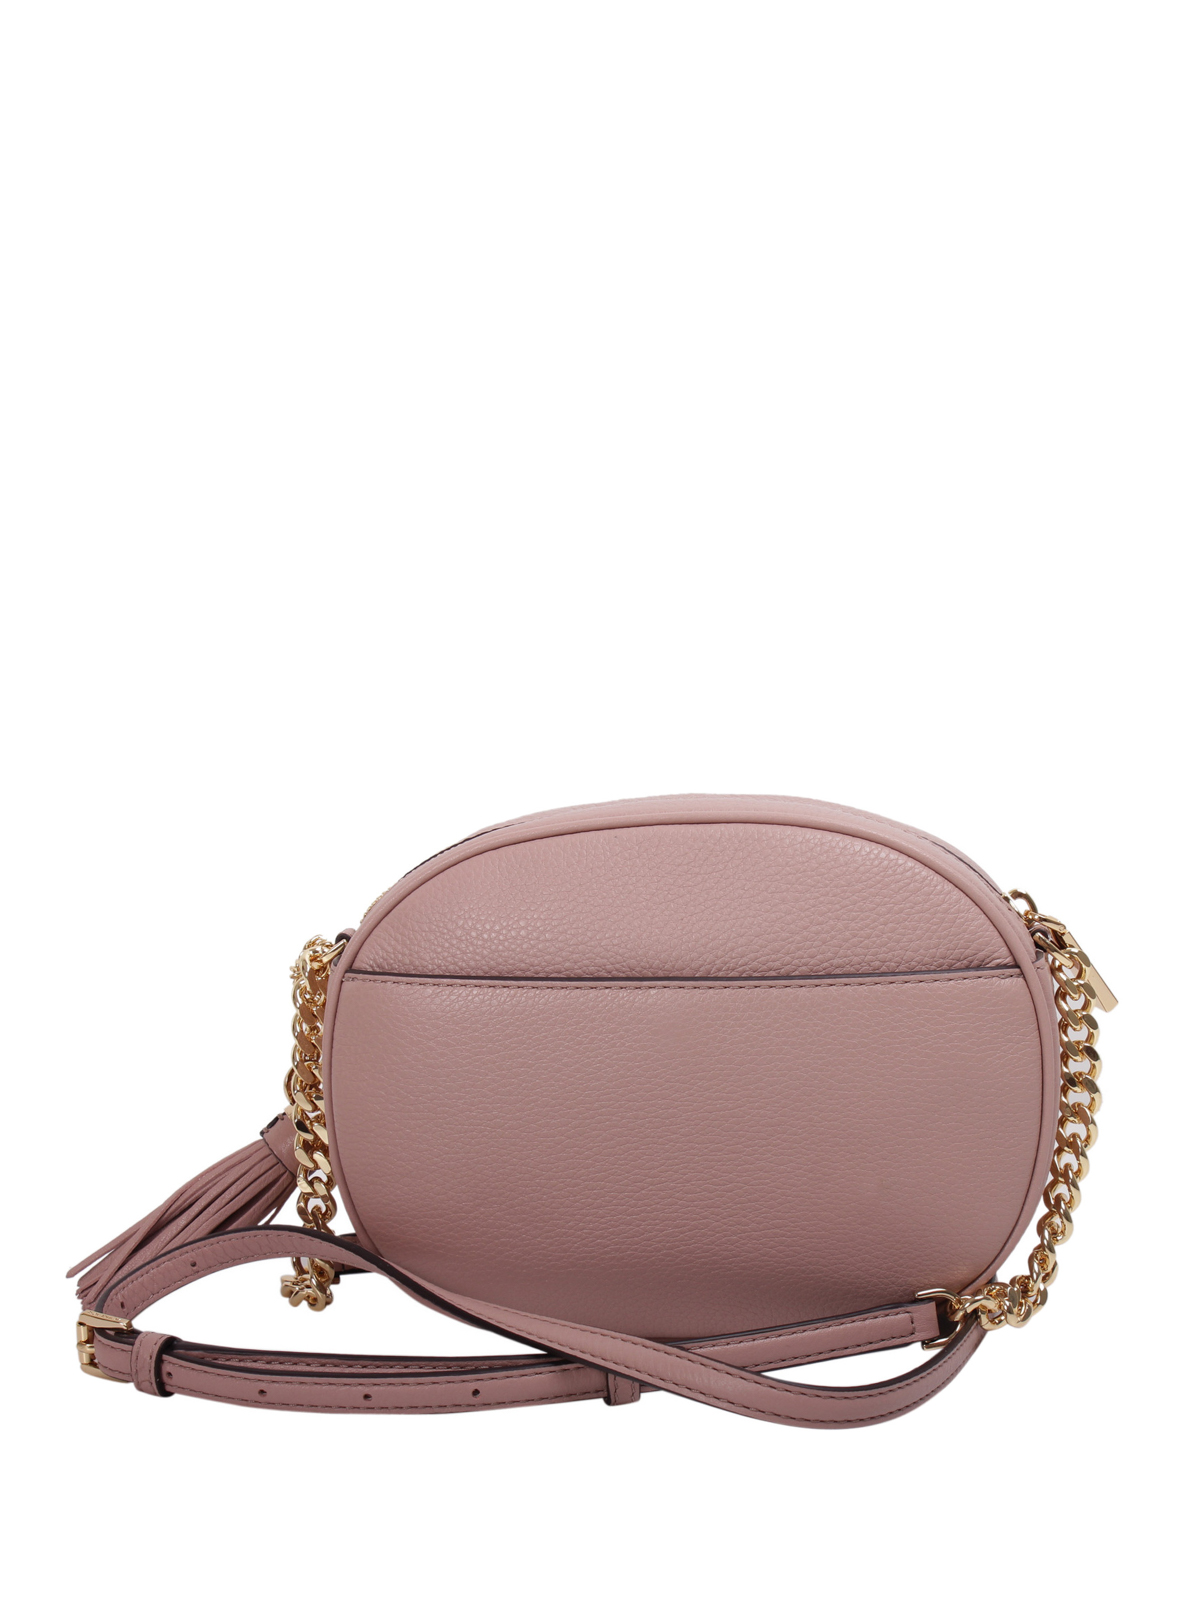 755f8ed1a902a2 iKRIX MICHAEL KORS: cross body bags - Ginny leather medium crossbody